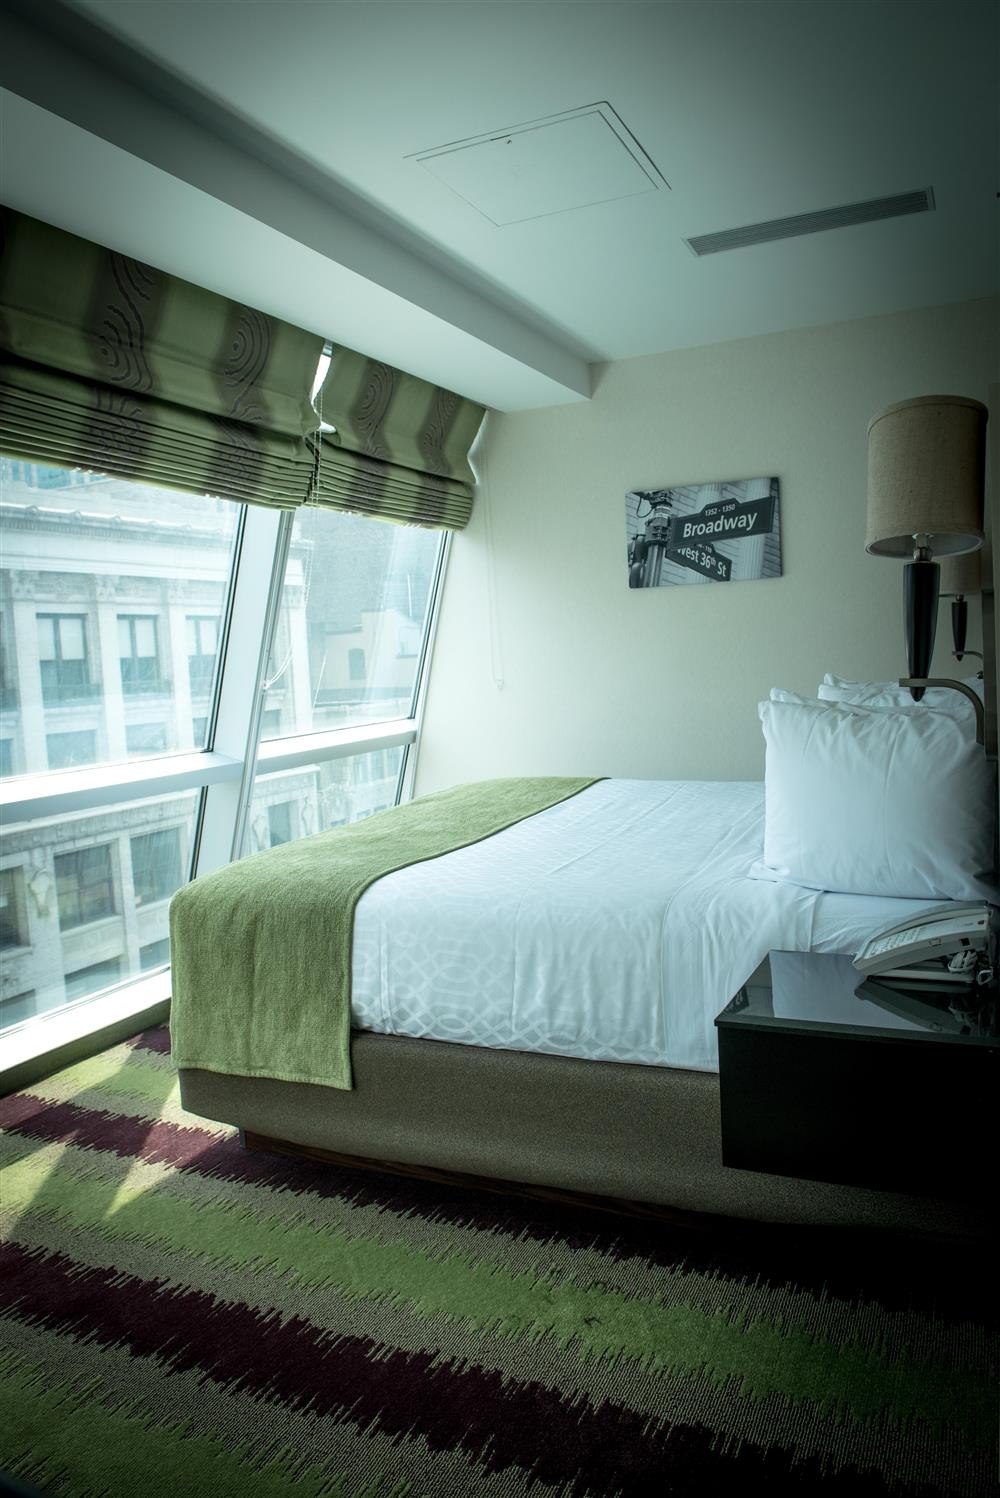 Best Western Hotel Room: Best Western Premier Hotel Herald Square NYC, NY